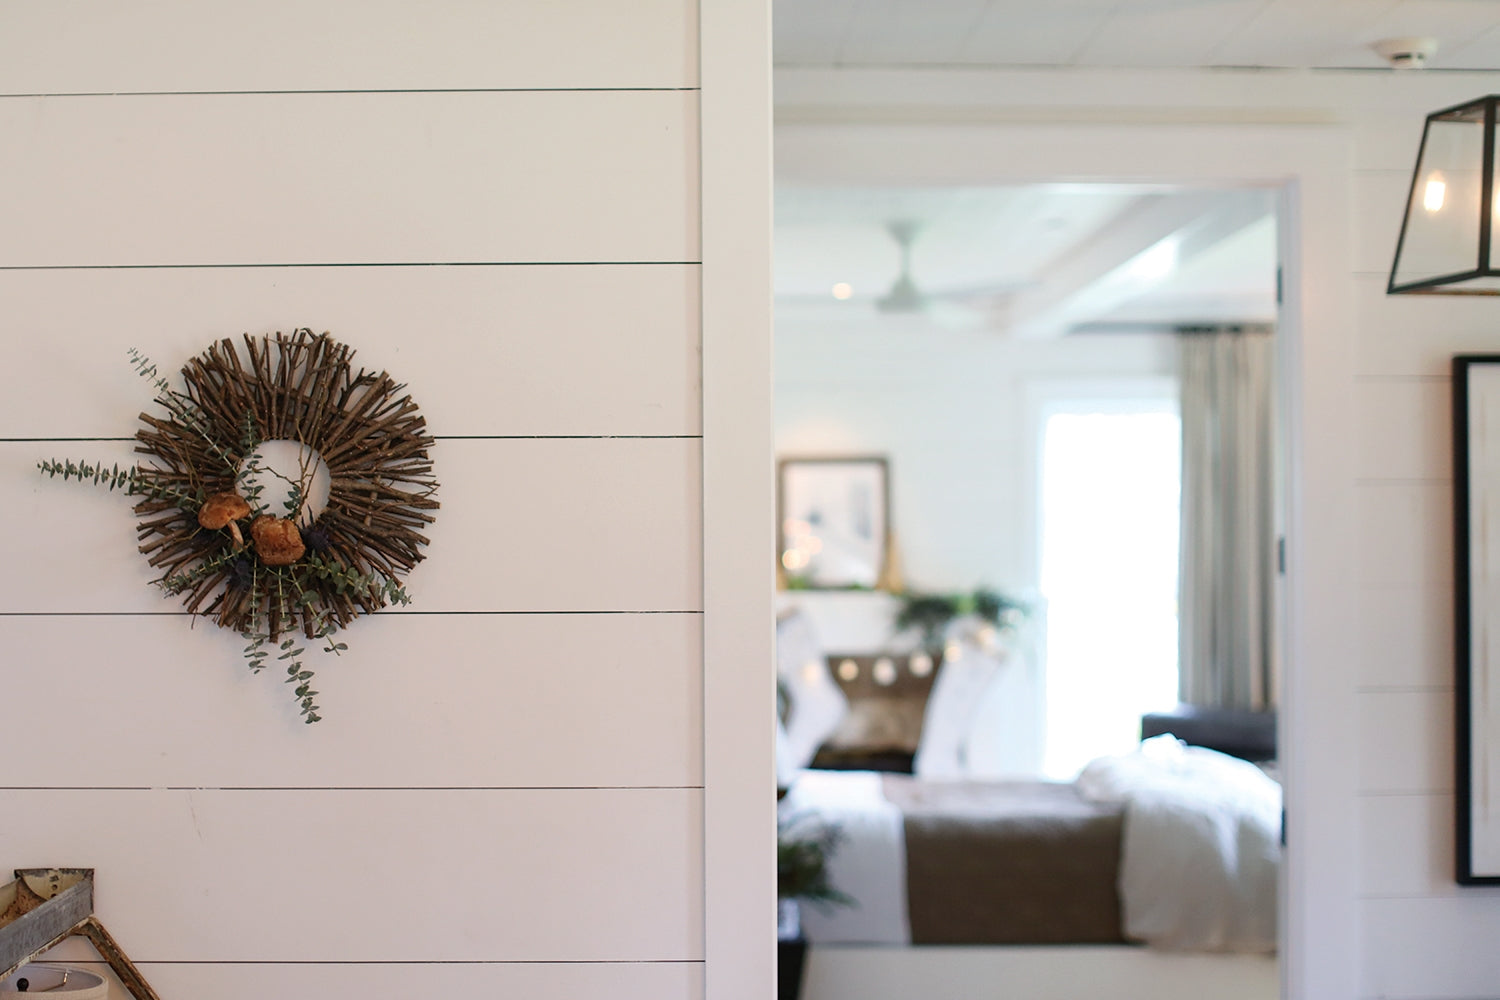 Boutique, wreath, wreaths, twig wreath, farmhouse decor, modern farmhouse, home decoration, gift ideas, home decor ideas, office decor, home office ideas, farmhouse decor ideas, farmhouse modern decor, home decor, wreaths for front door, room decor bedroom, gifts, home decoration ideas, twig wreath, wreaths, twig wreath, minimalist, nordic, nordic wreaths, natural twig wreath, natural wood, wood wreath, wooden wreath, gift ideas, simple wreath, natural wreath, modern home decor